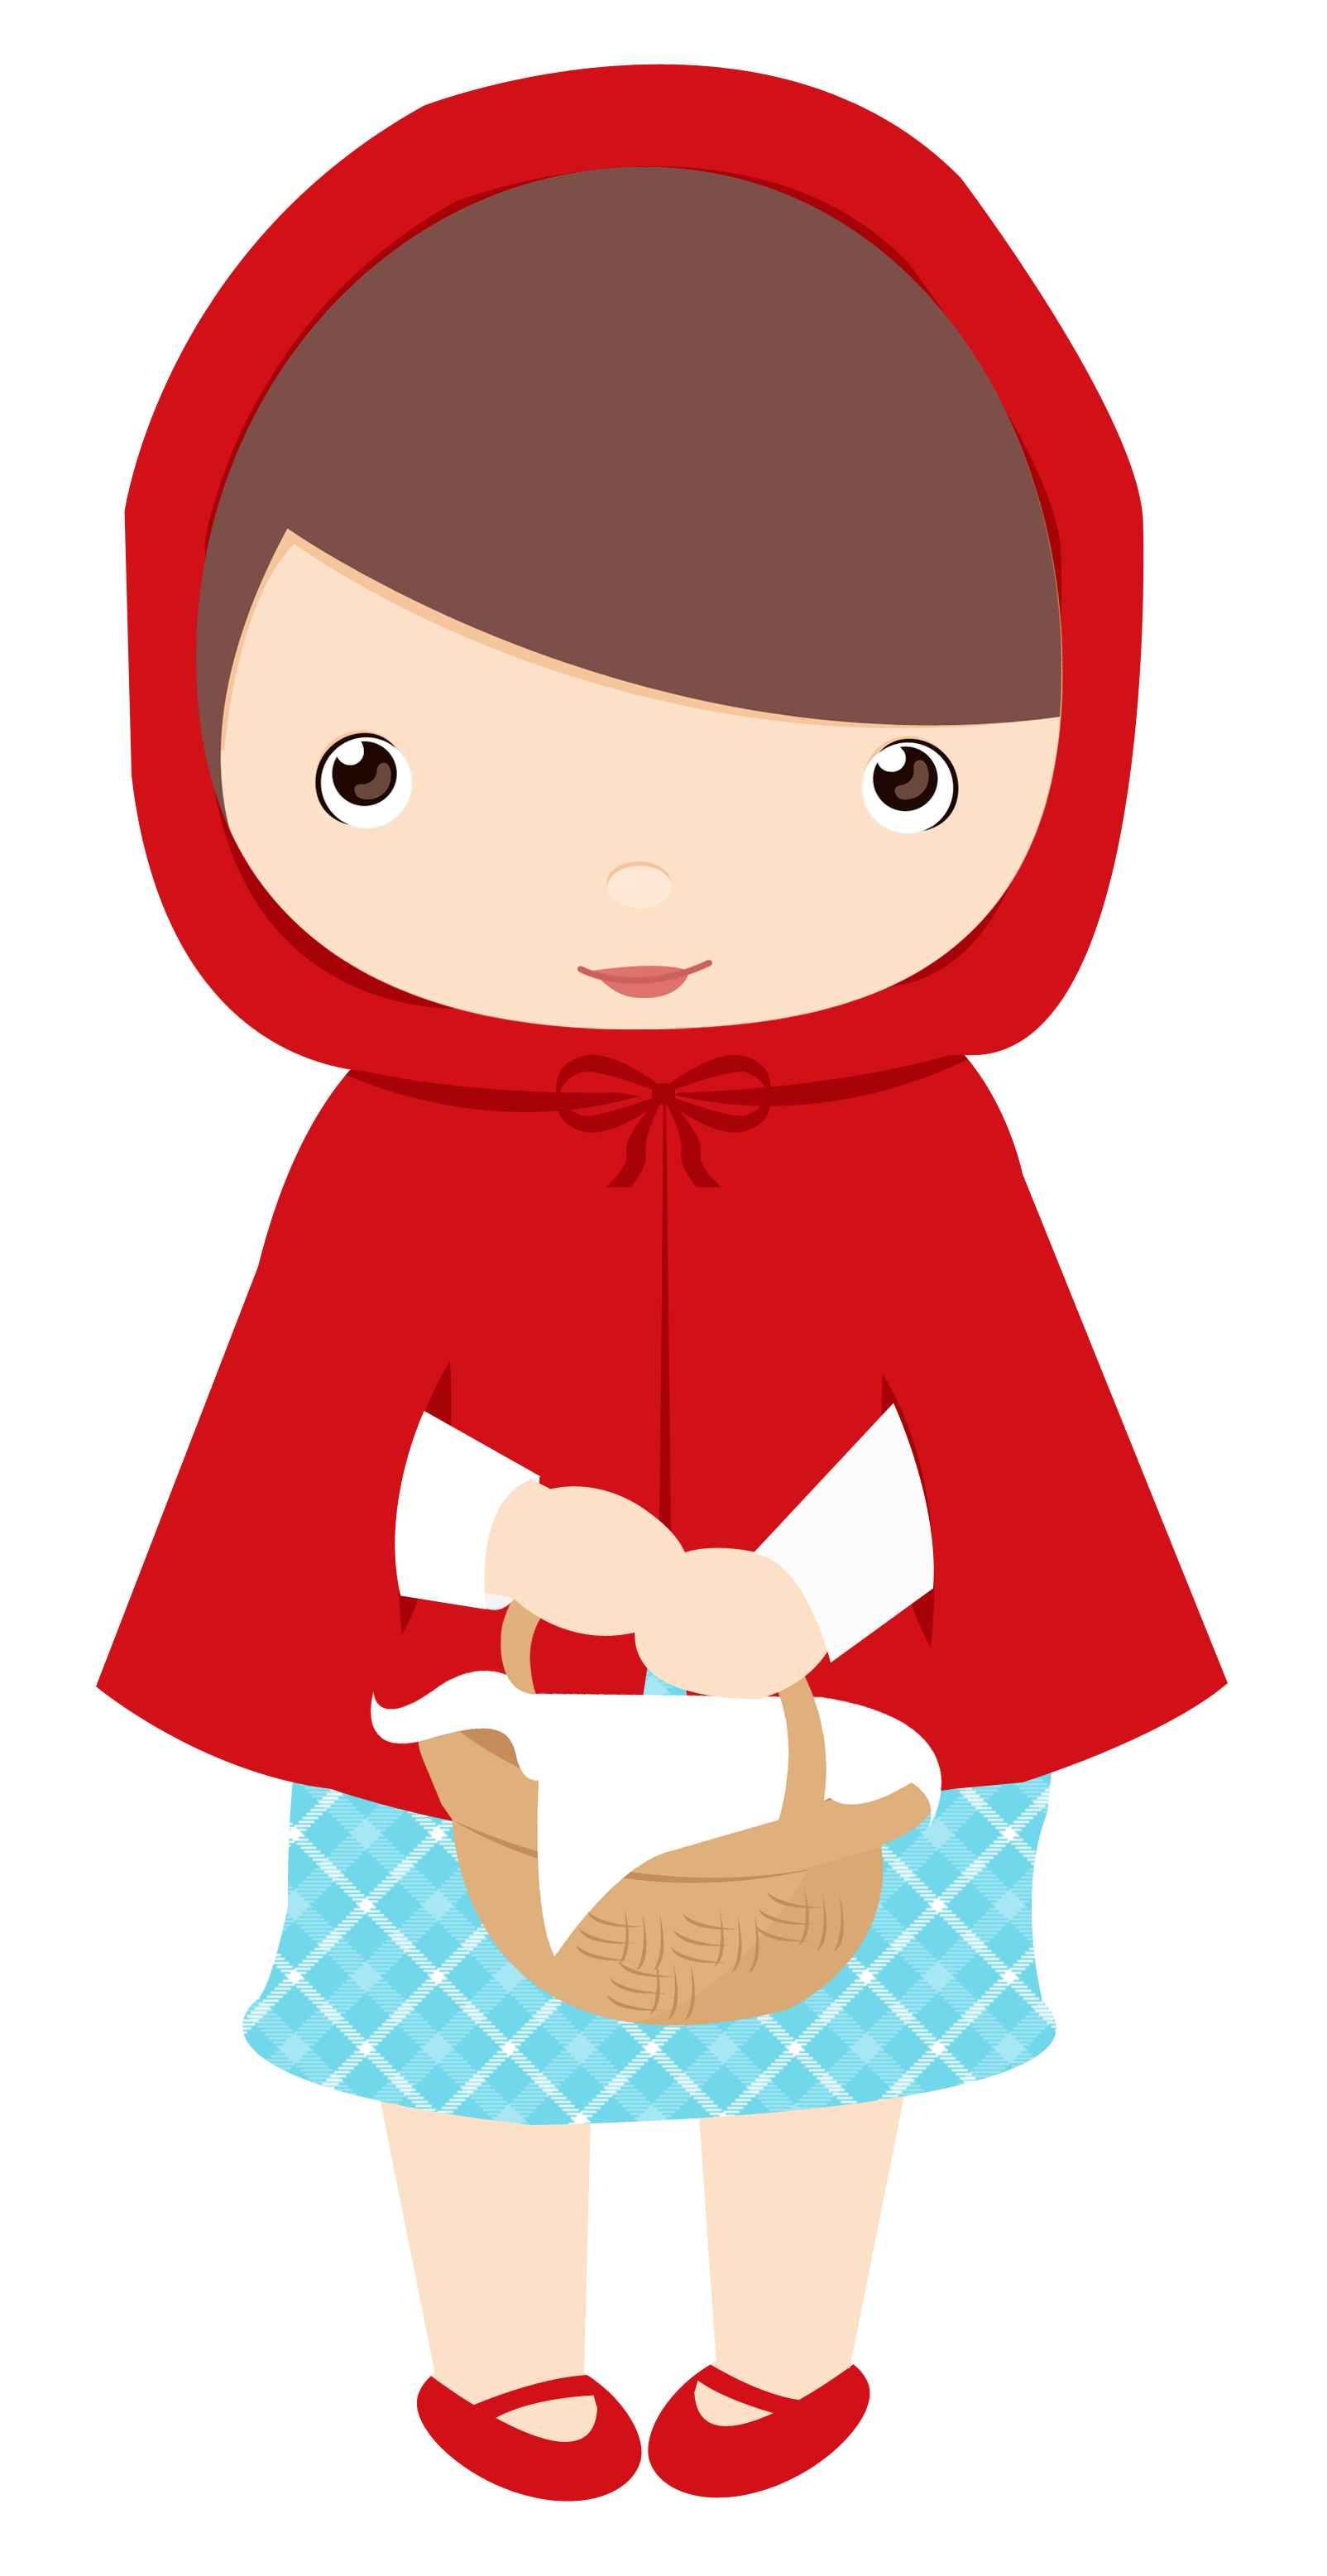 Clipart forest red riding hood. Iiz blzxemwiq png collection